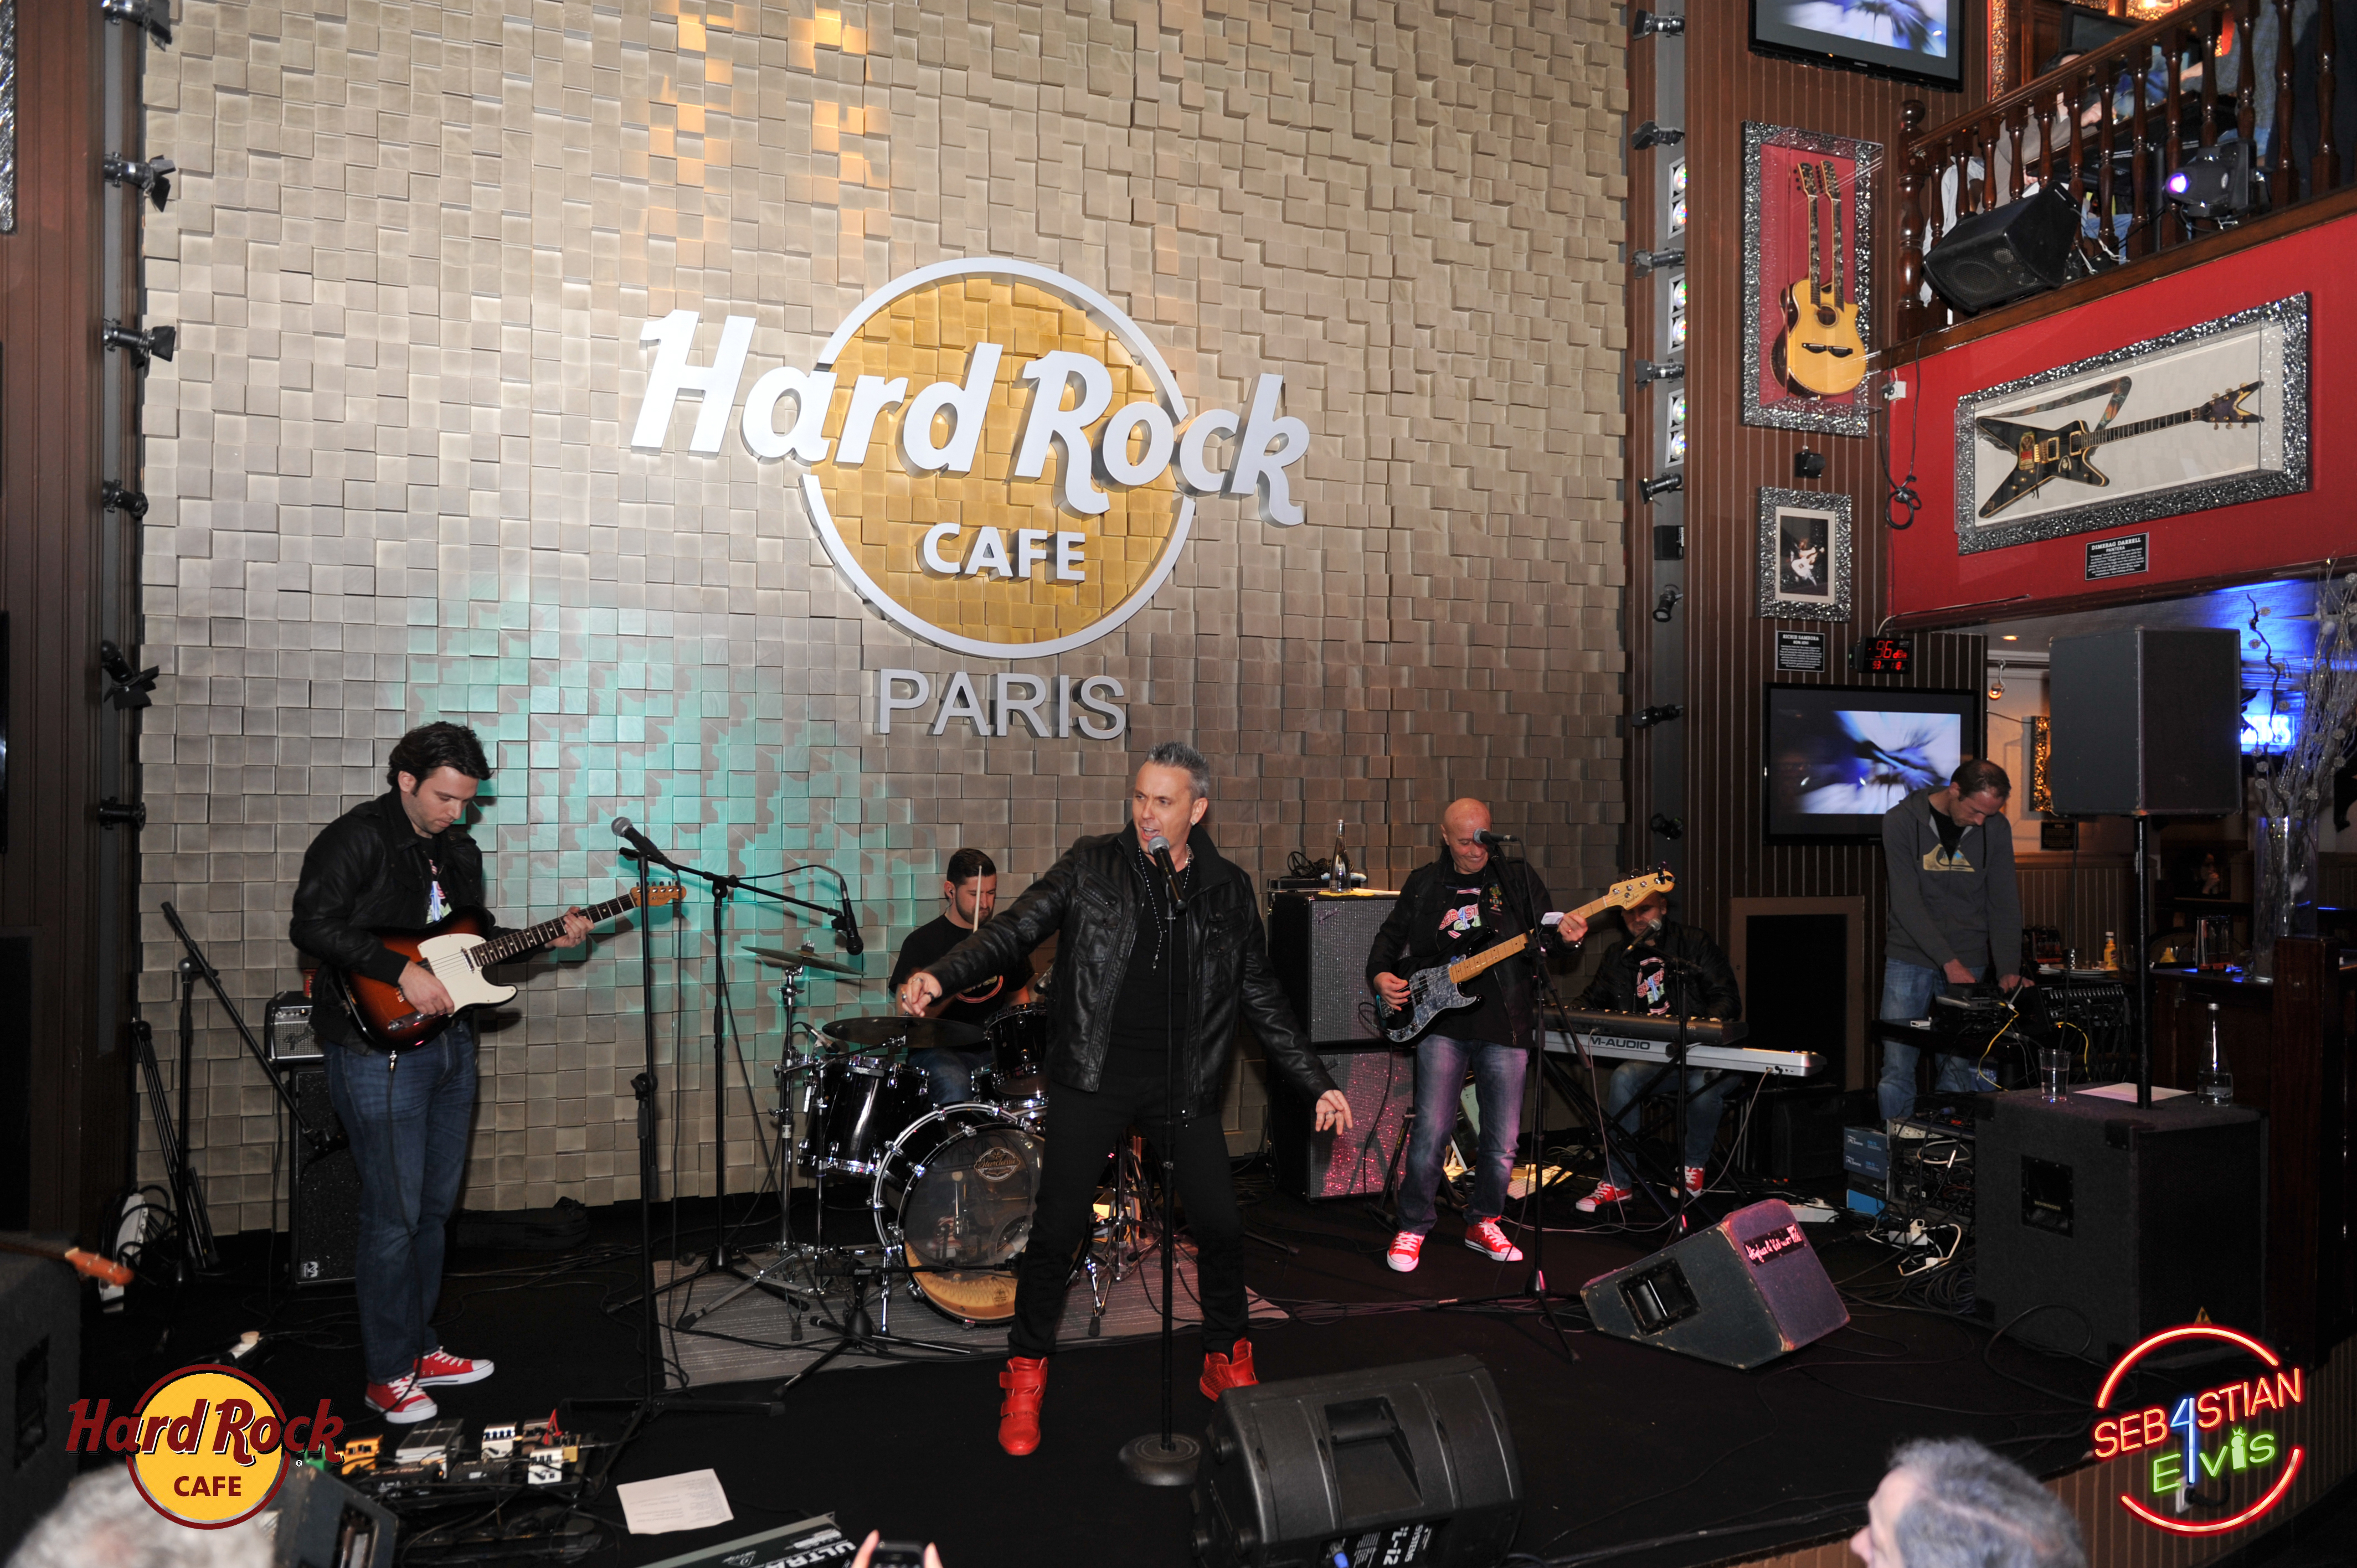 hard-rock-cafe-paris-elvis-night-27 janvier-2016-sebastian-for-elvis-facebook-memorial-show-0006